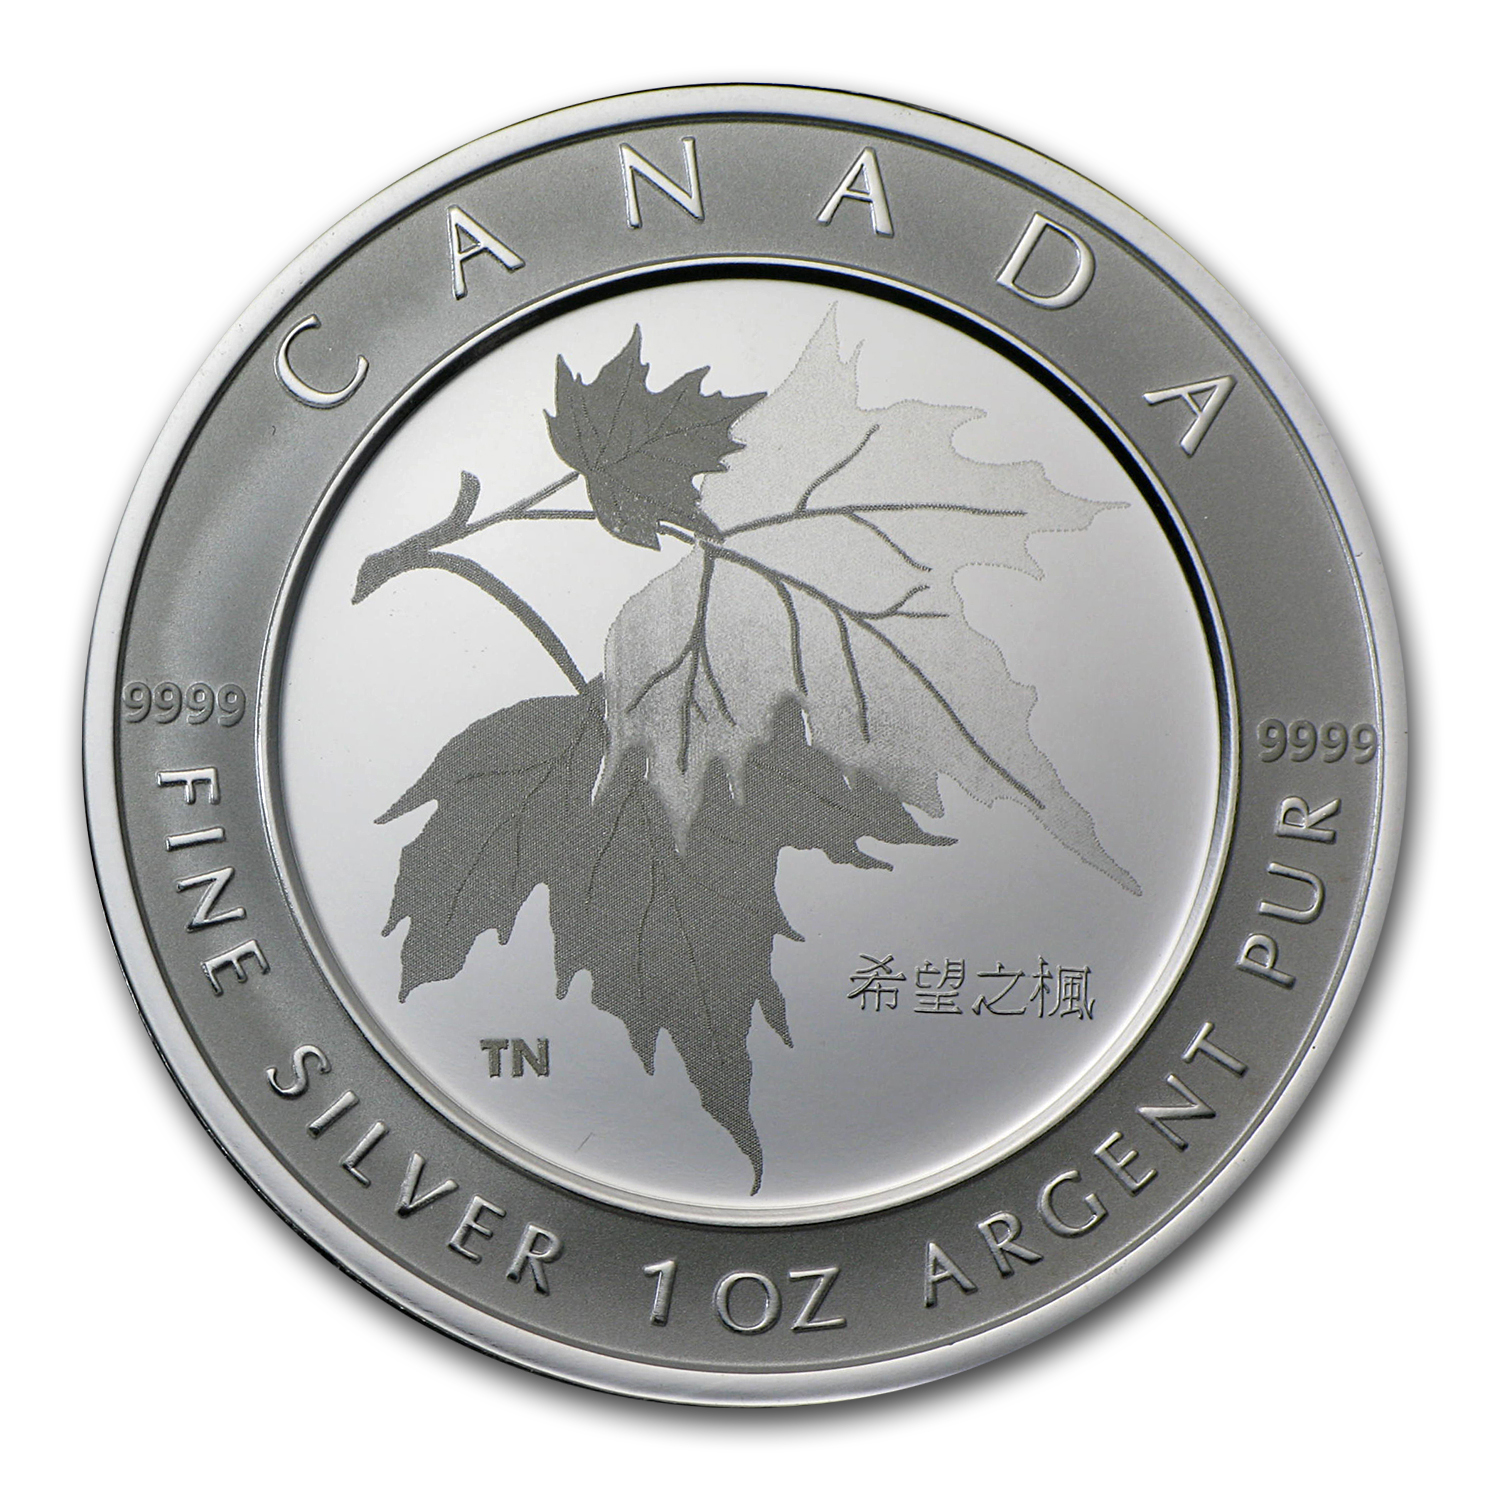 2005 Canada 1 oz Silver $5 Maple Leaf of Hope